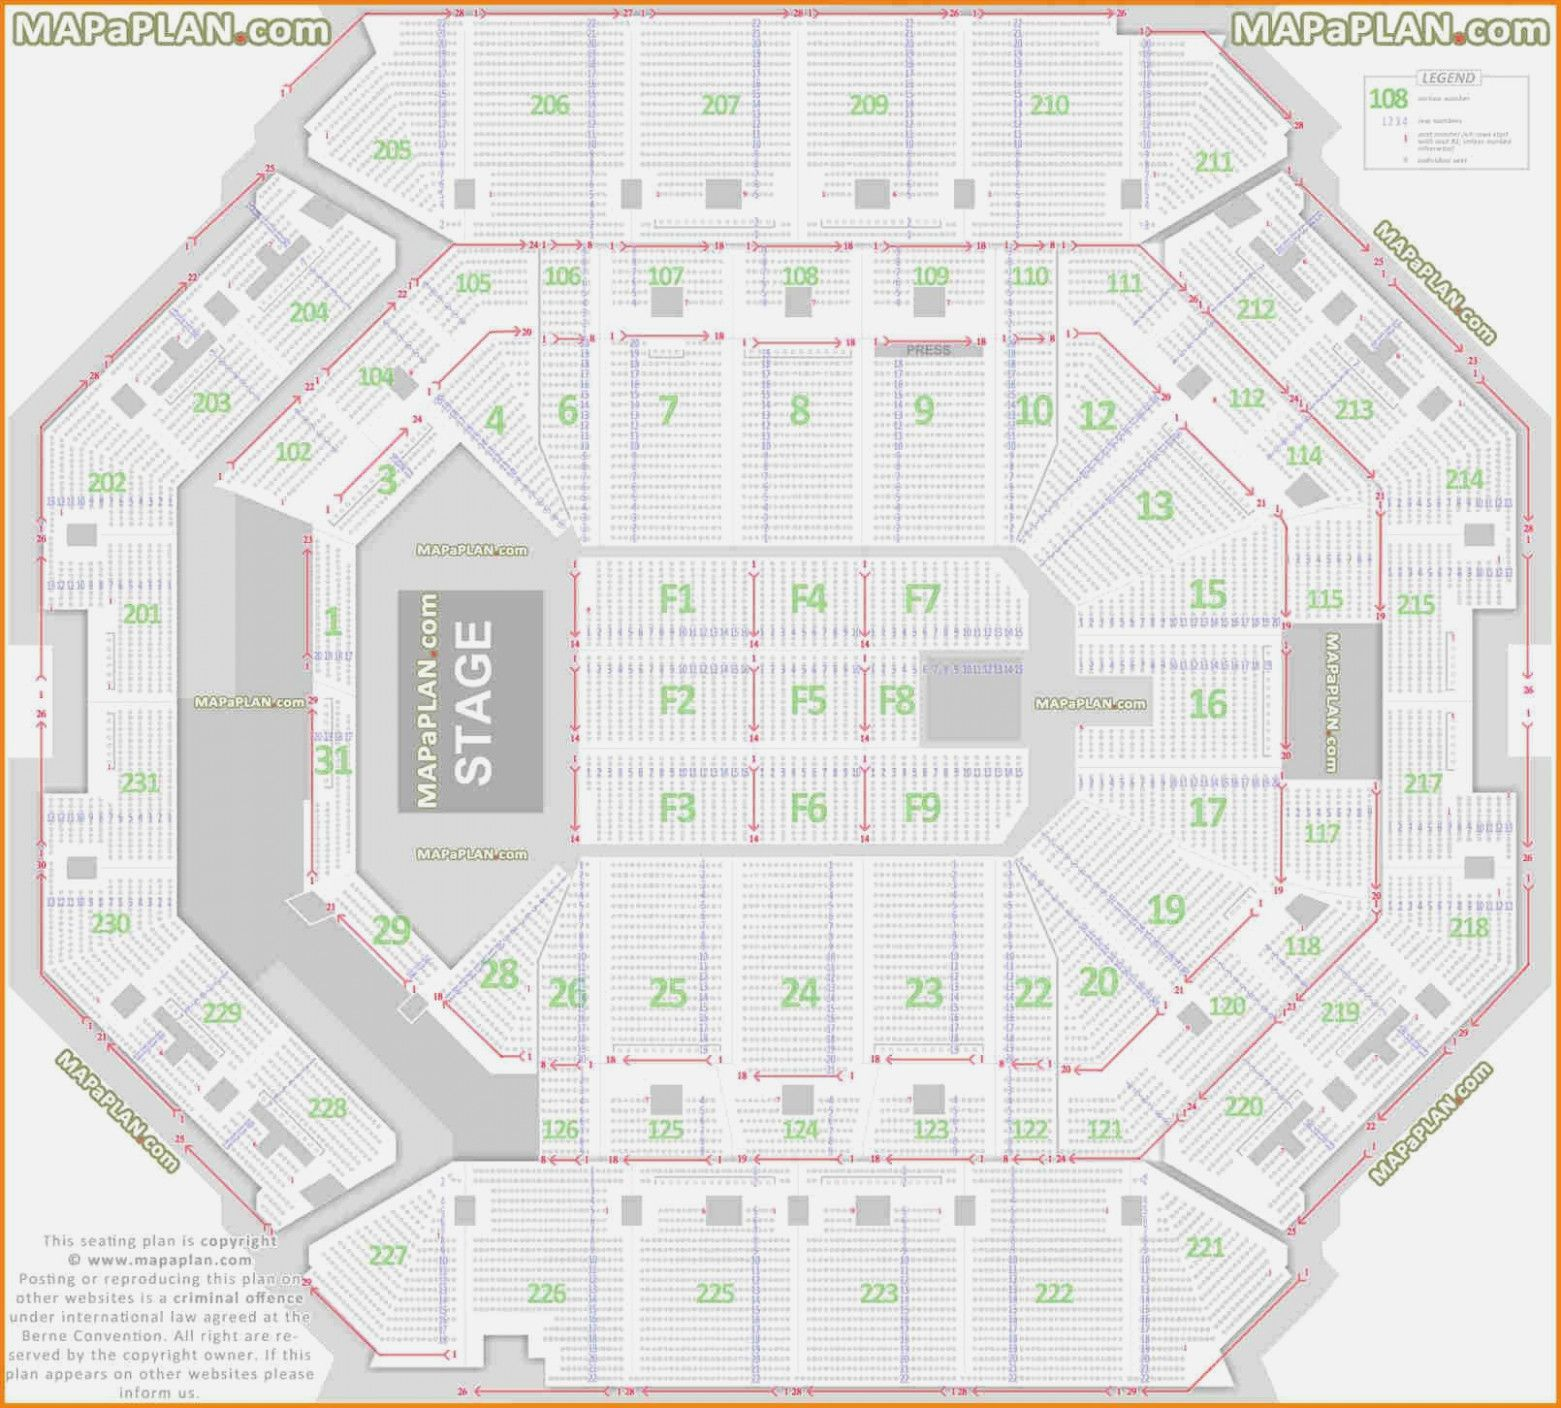 Mgm Grand Garden Arena Seating Chart With Rows Mgm Grand Seating Chart Rows Mgm Ka Seating Chart With Seat Numbers Mgm Gran Seating Plan Seating Charts Seating